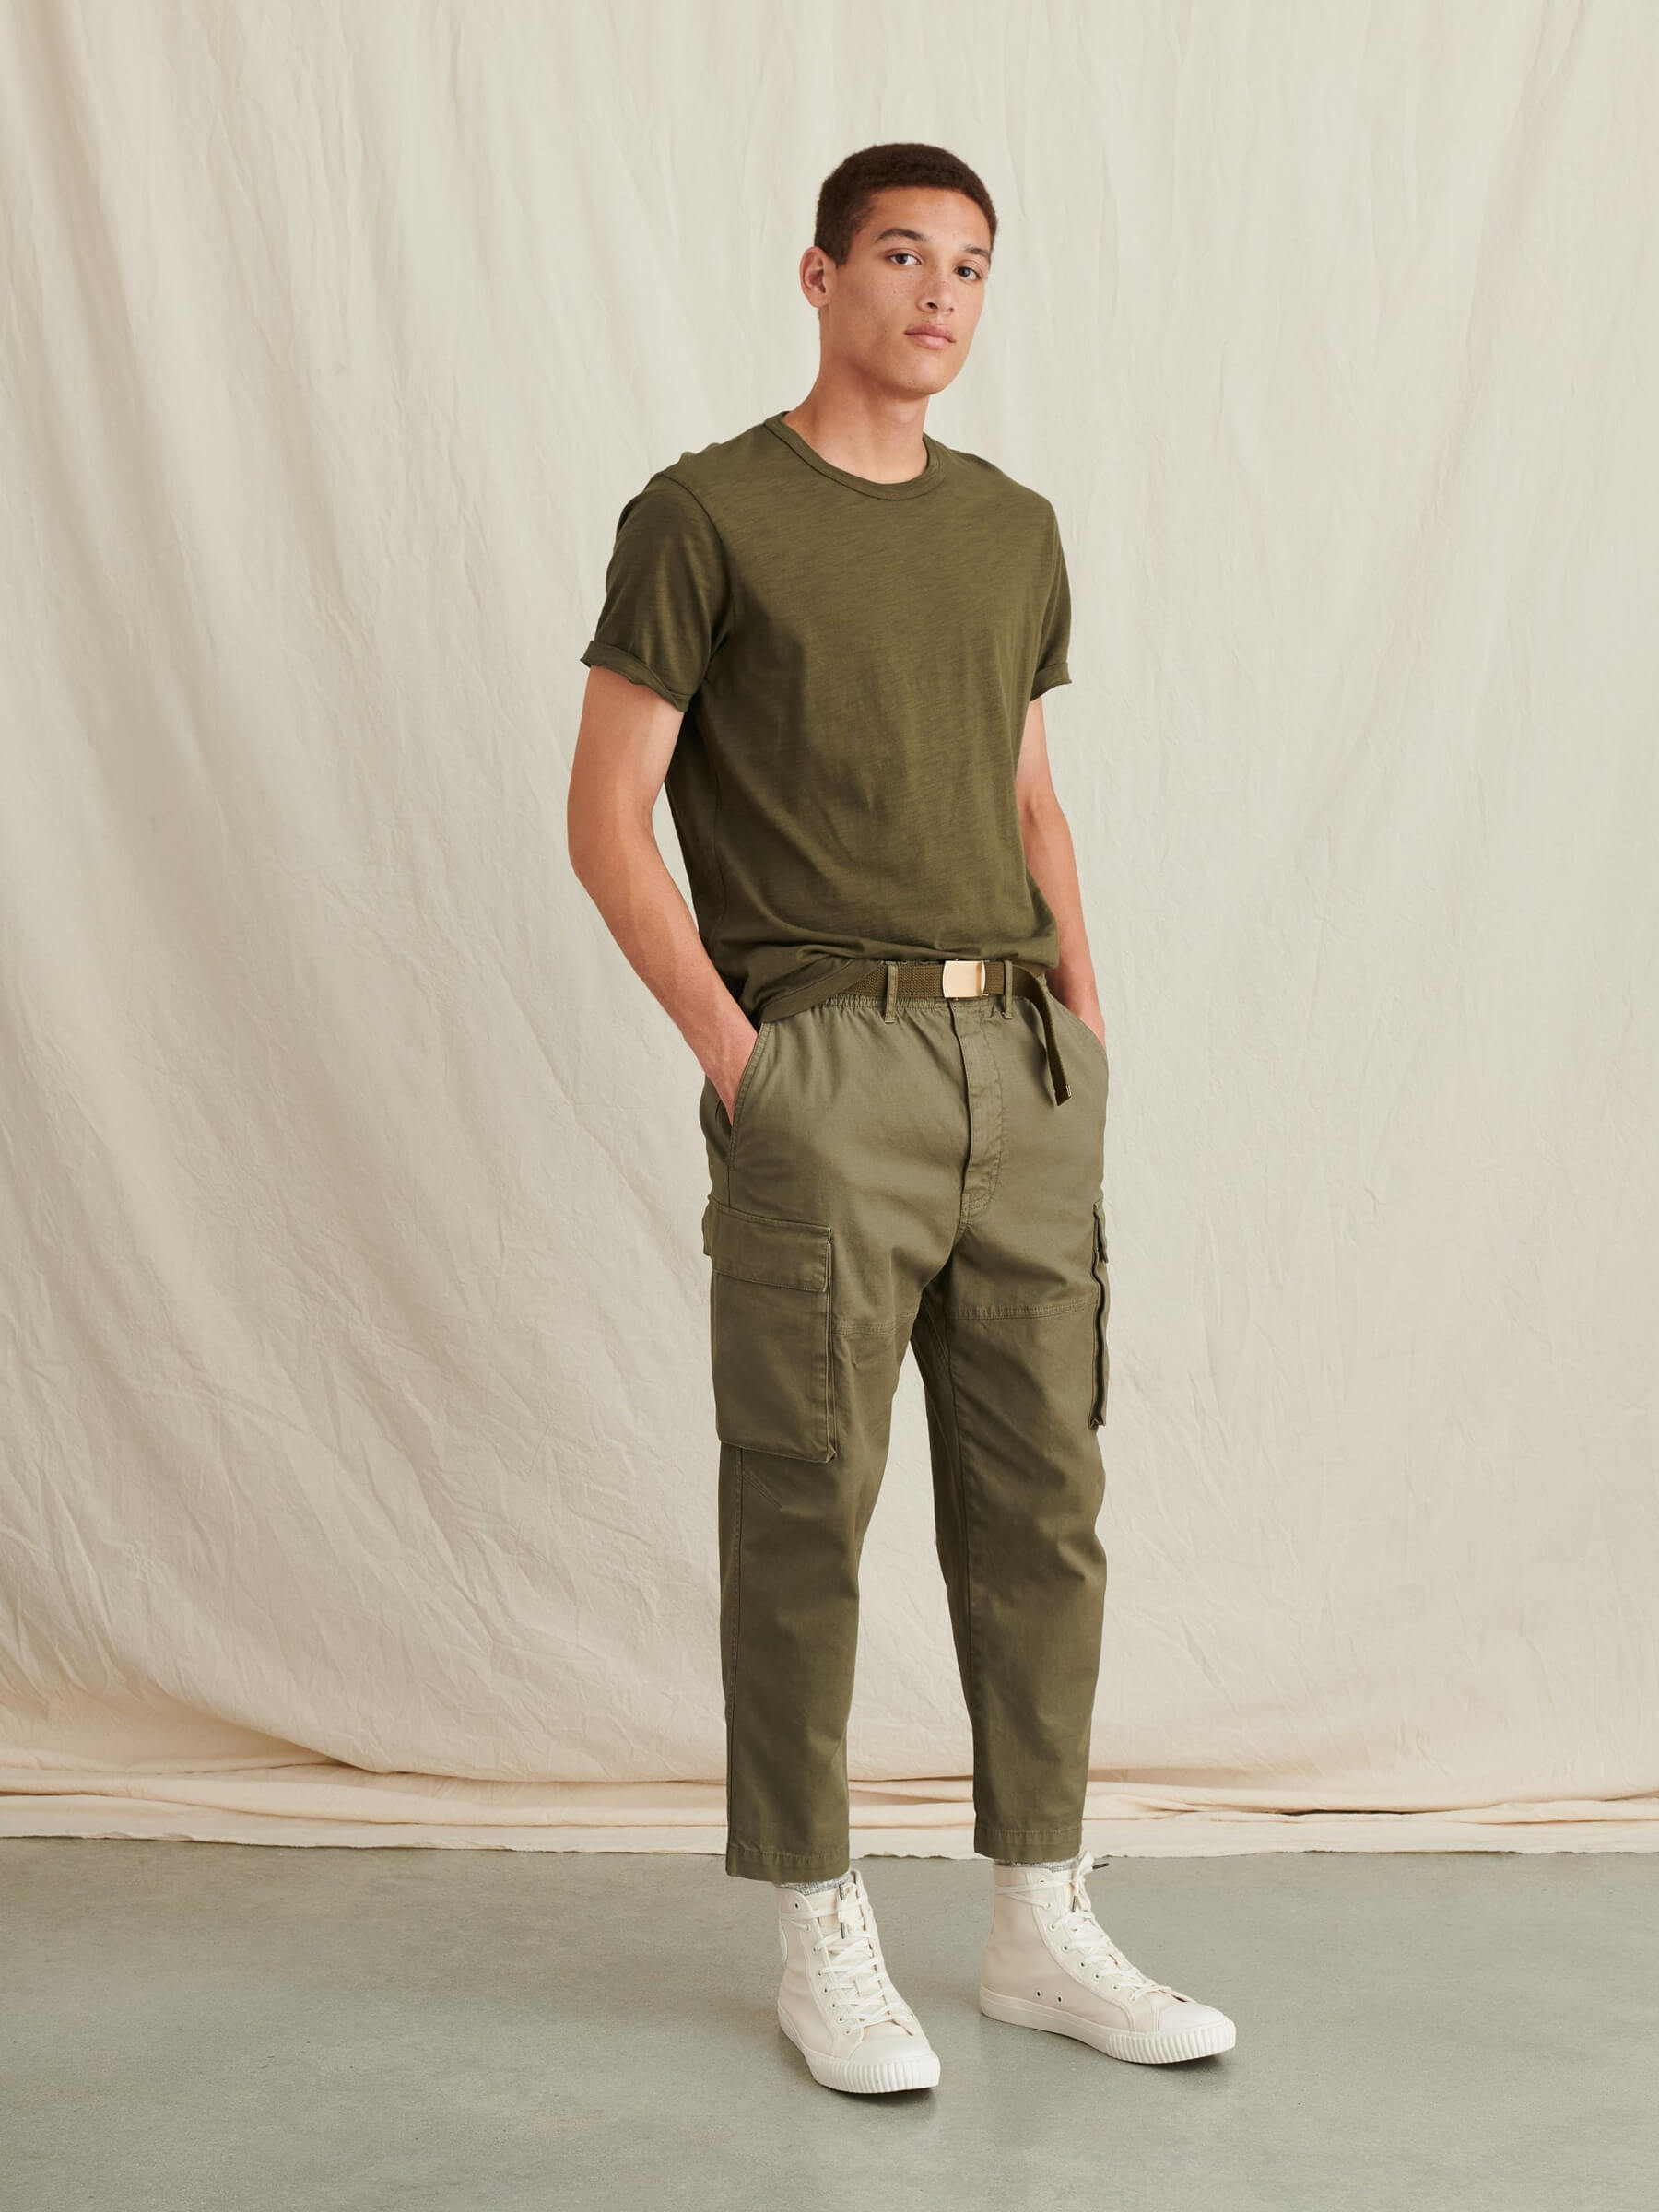 Best men's cargo pants for fall